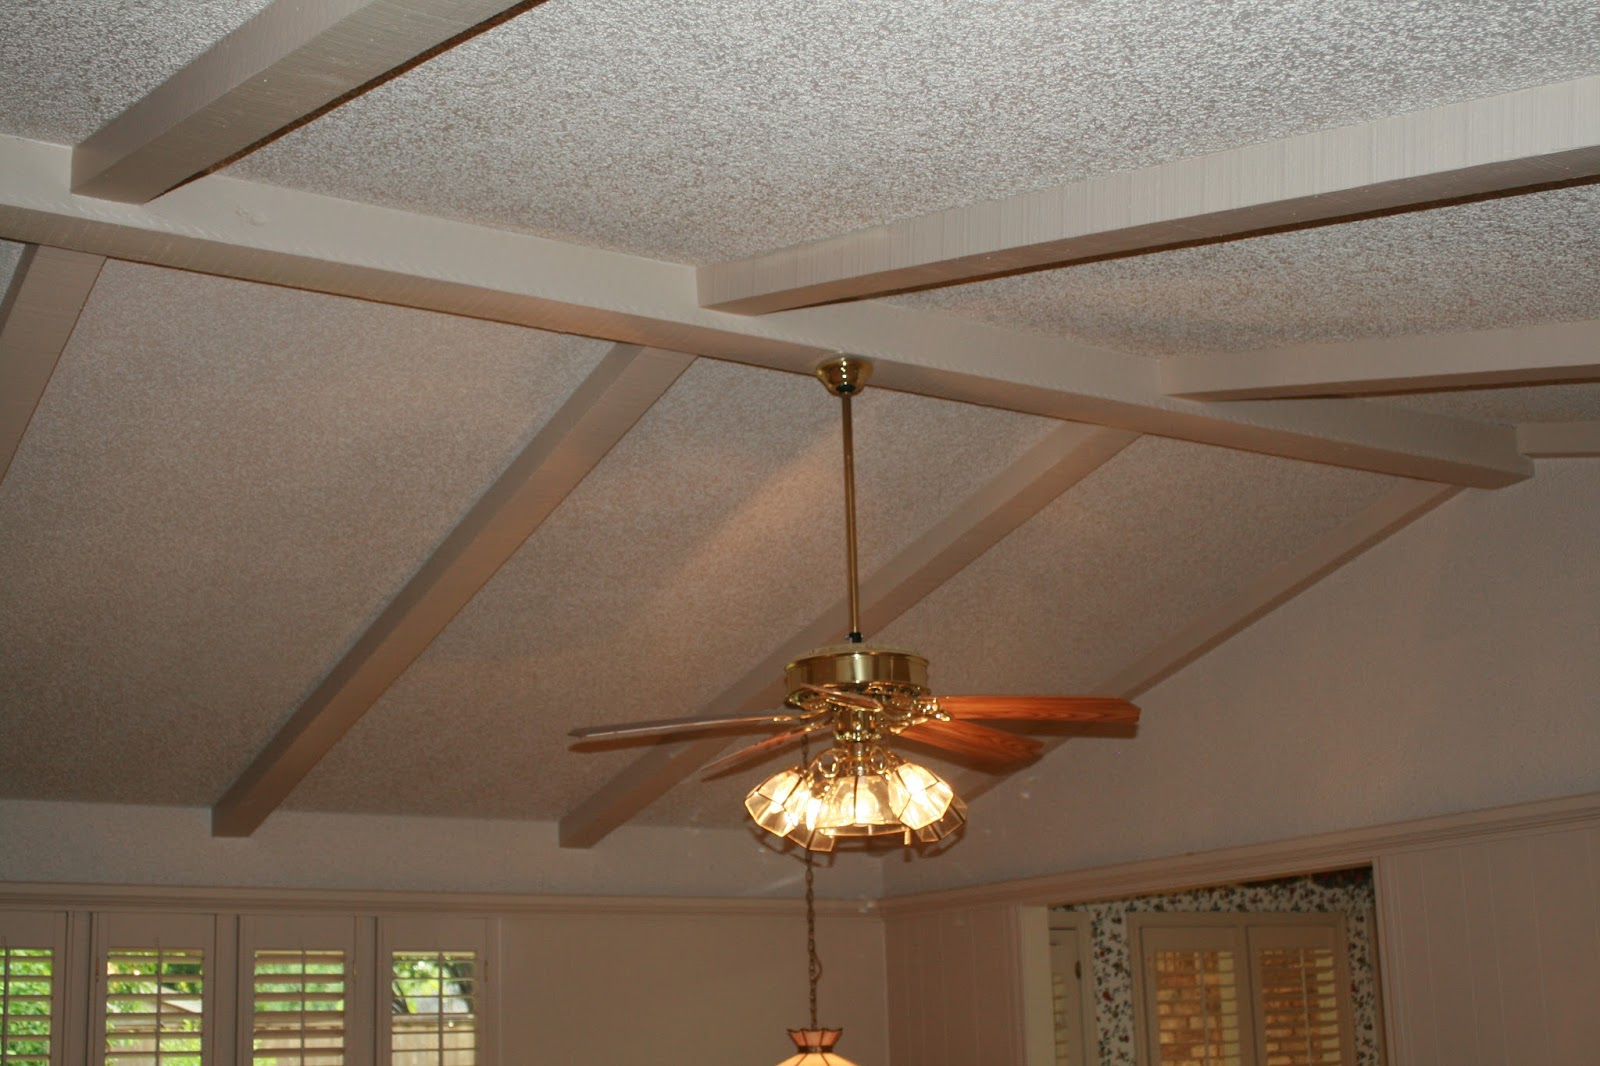 Romance Renovations: Painting Ceiling Beams to Look Like Wood